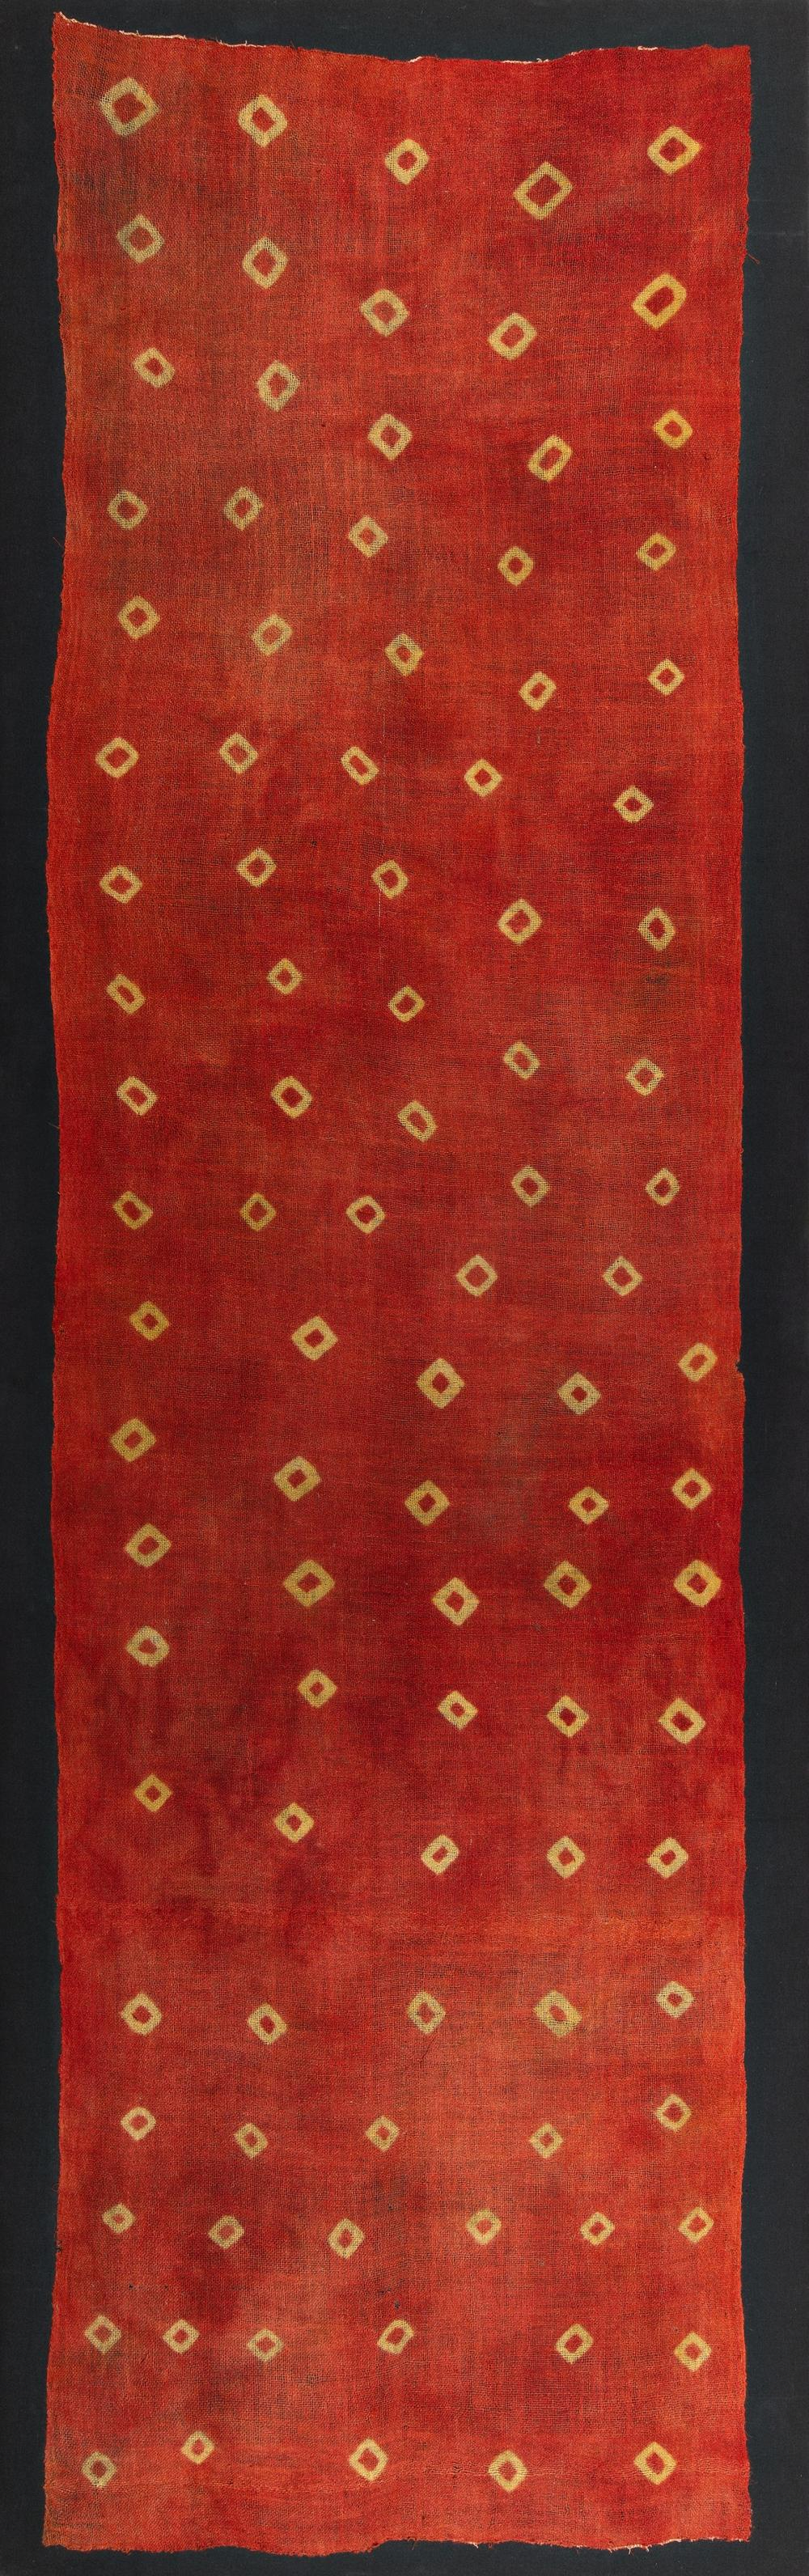 Cloth patterned in reserve technique (Plangi)